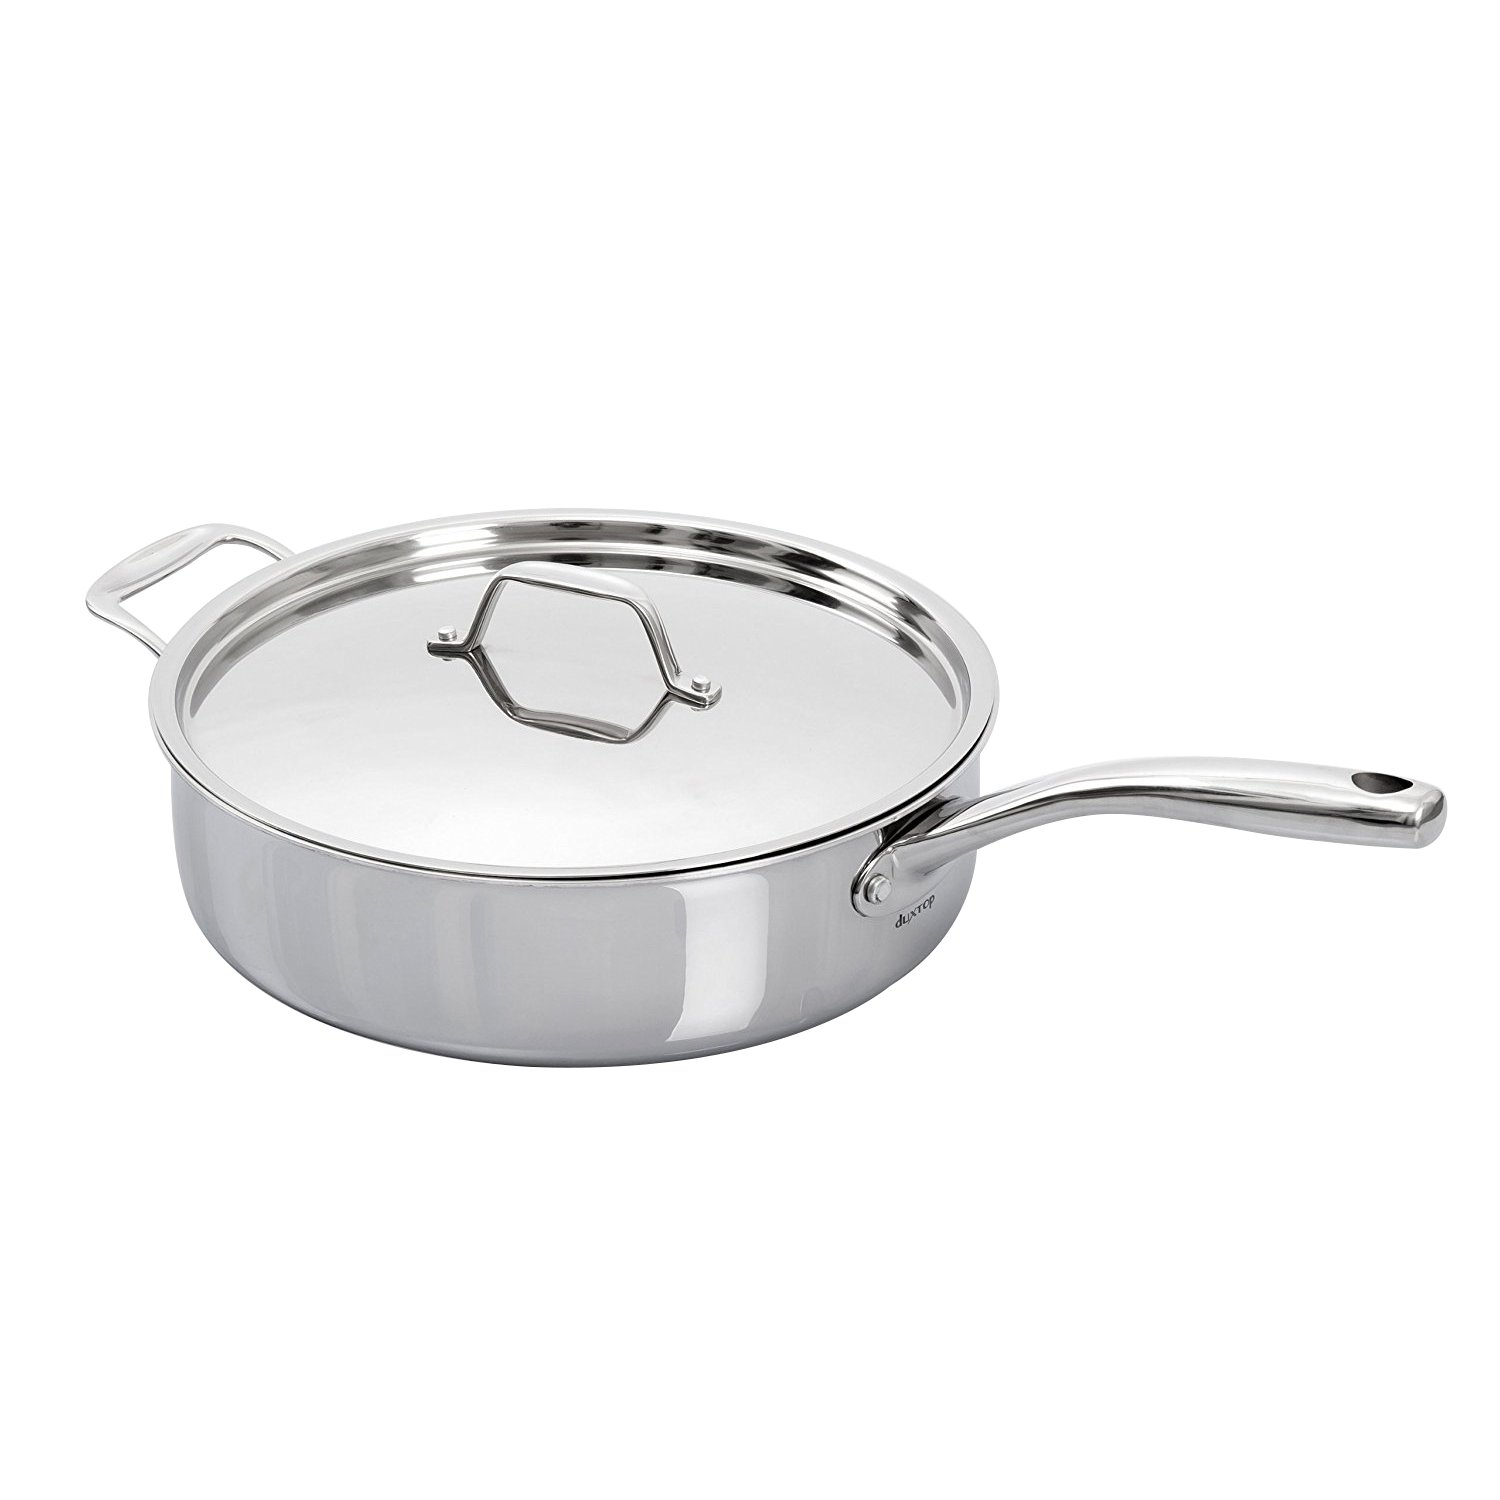 Secura Duxtop Whole-Clad Tri-Ply Stainless Steel Induction Ready Premium Cookware with Lid, 3Qt Saute Pan by Secura